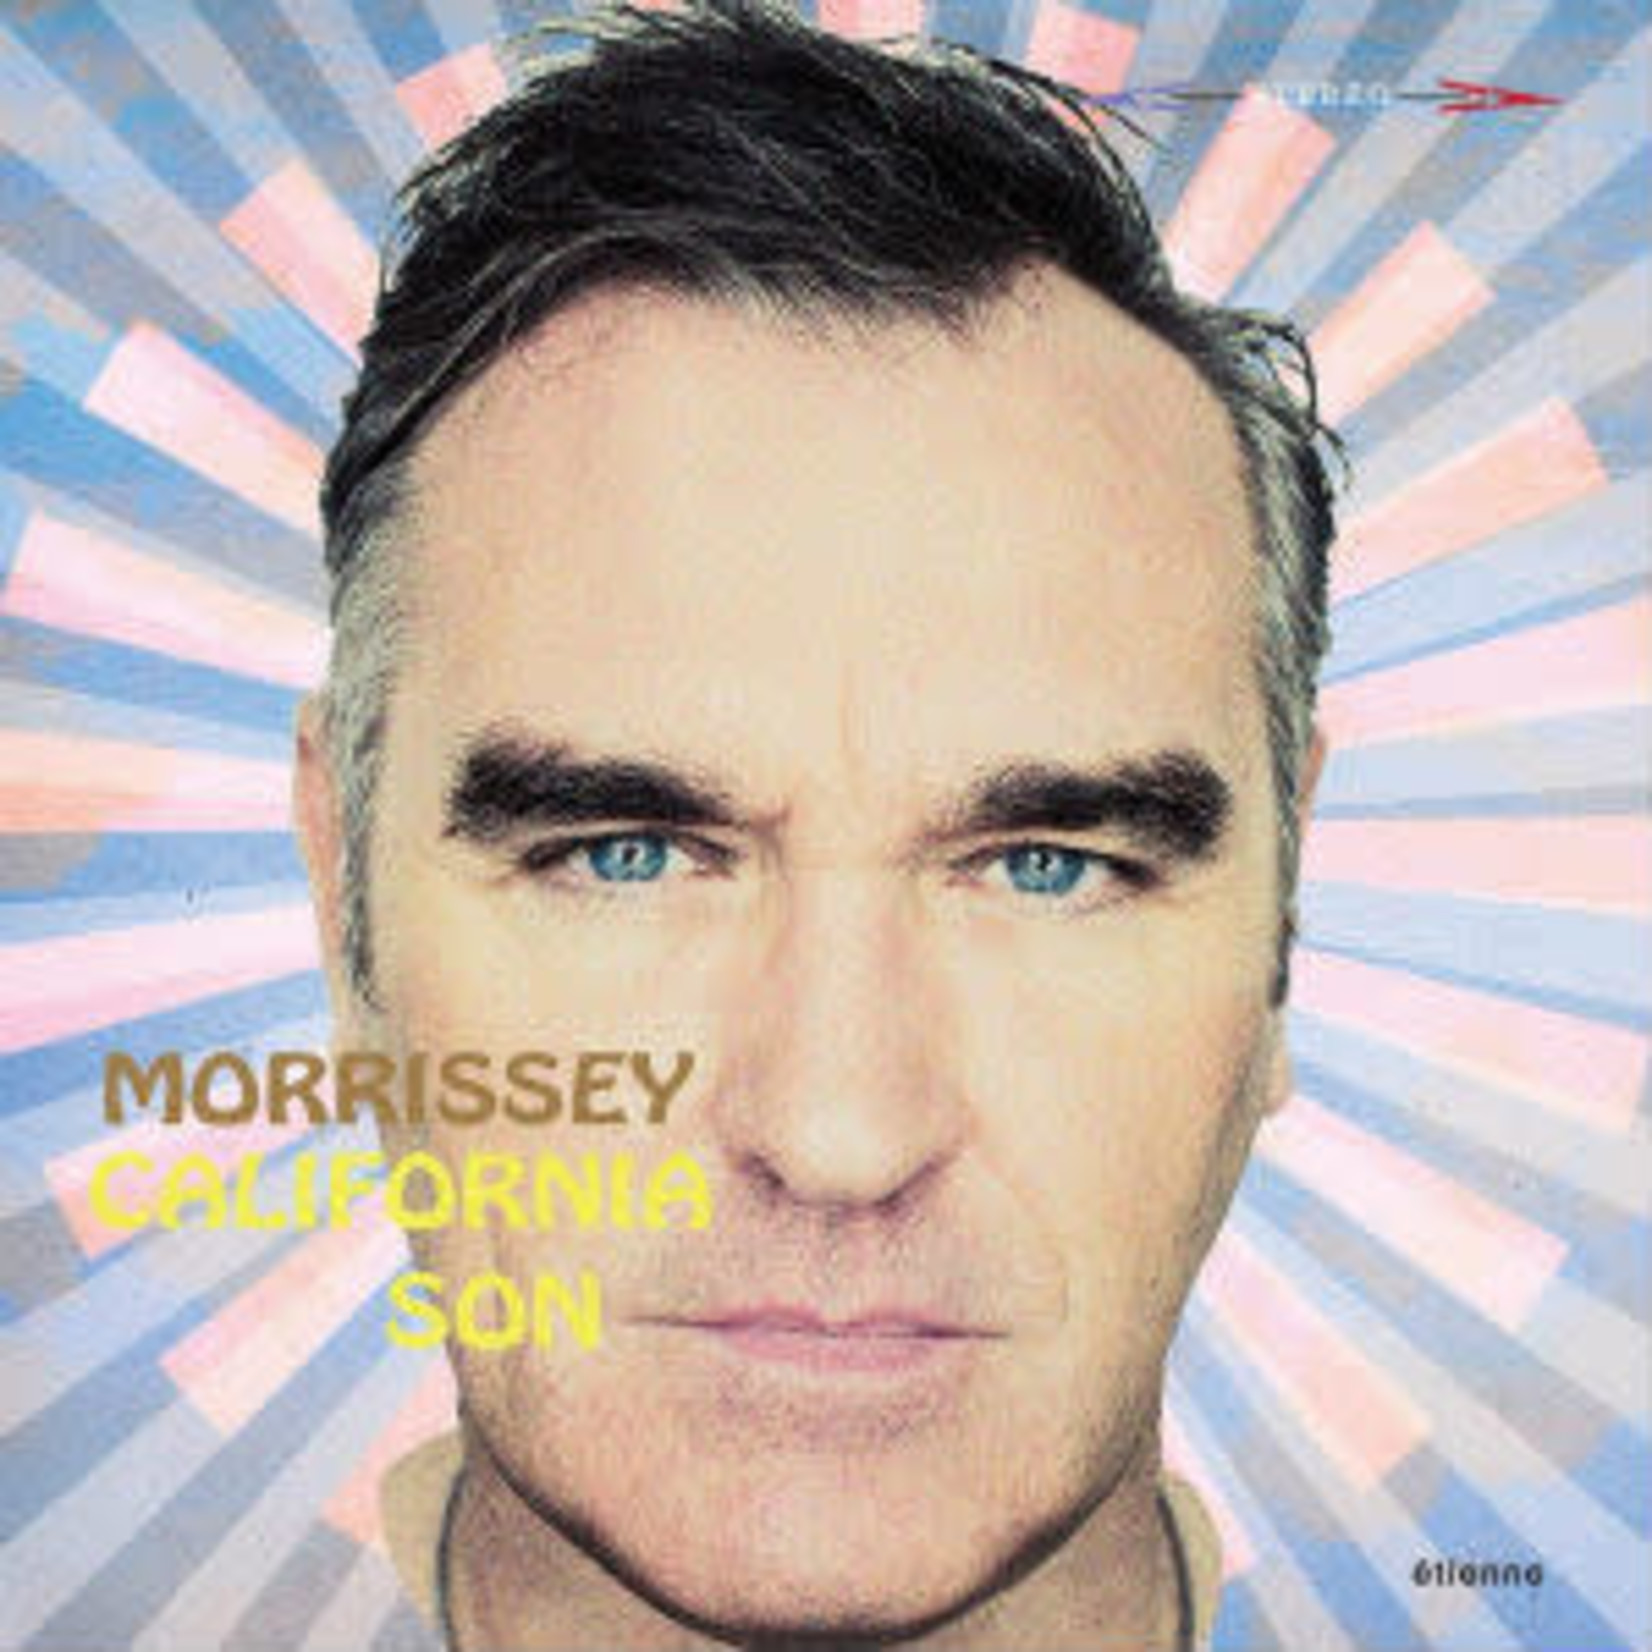 AMS - Record Morrissey - California Son